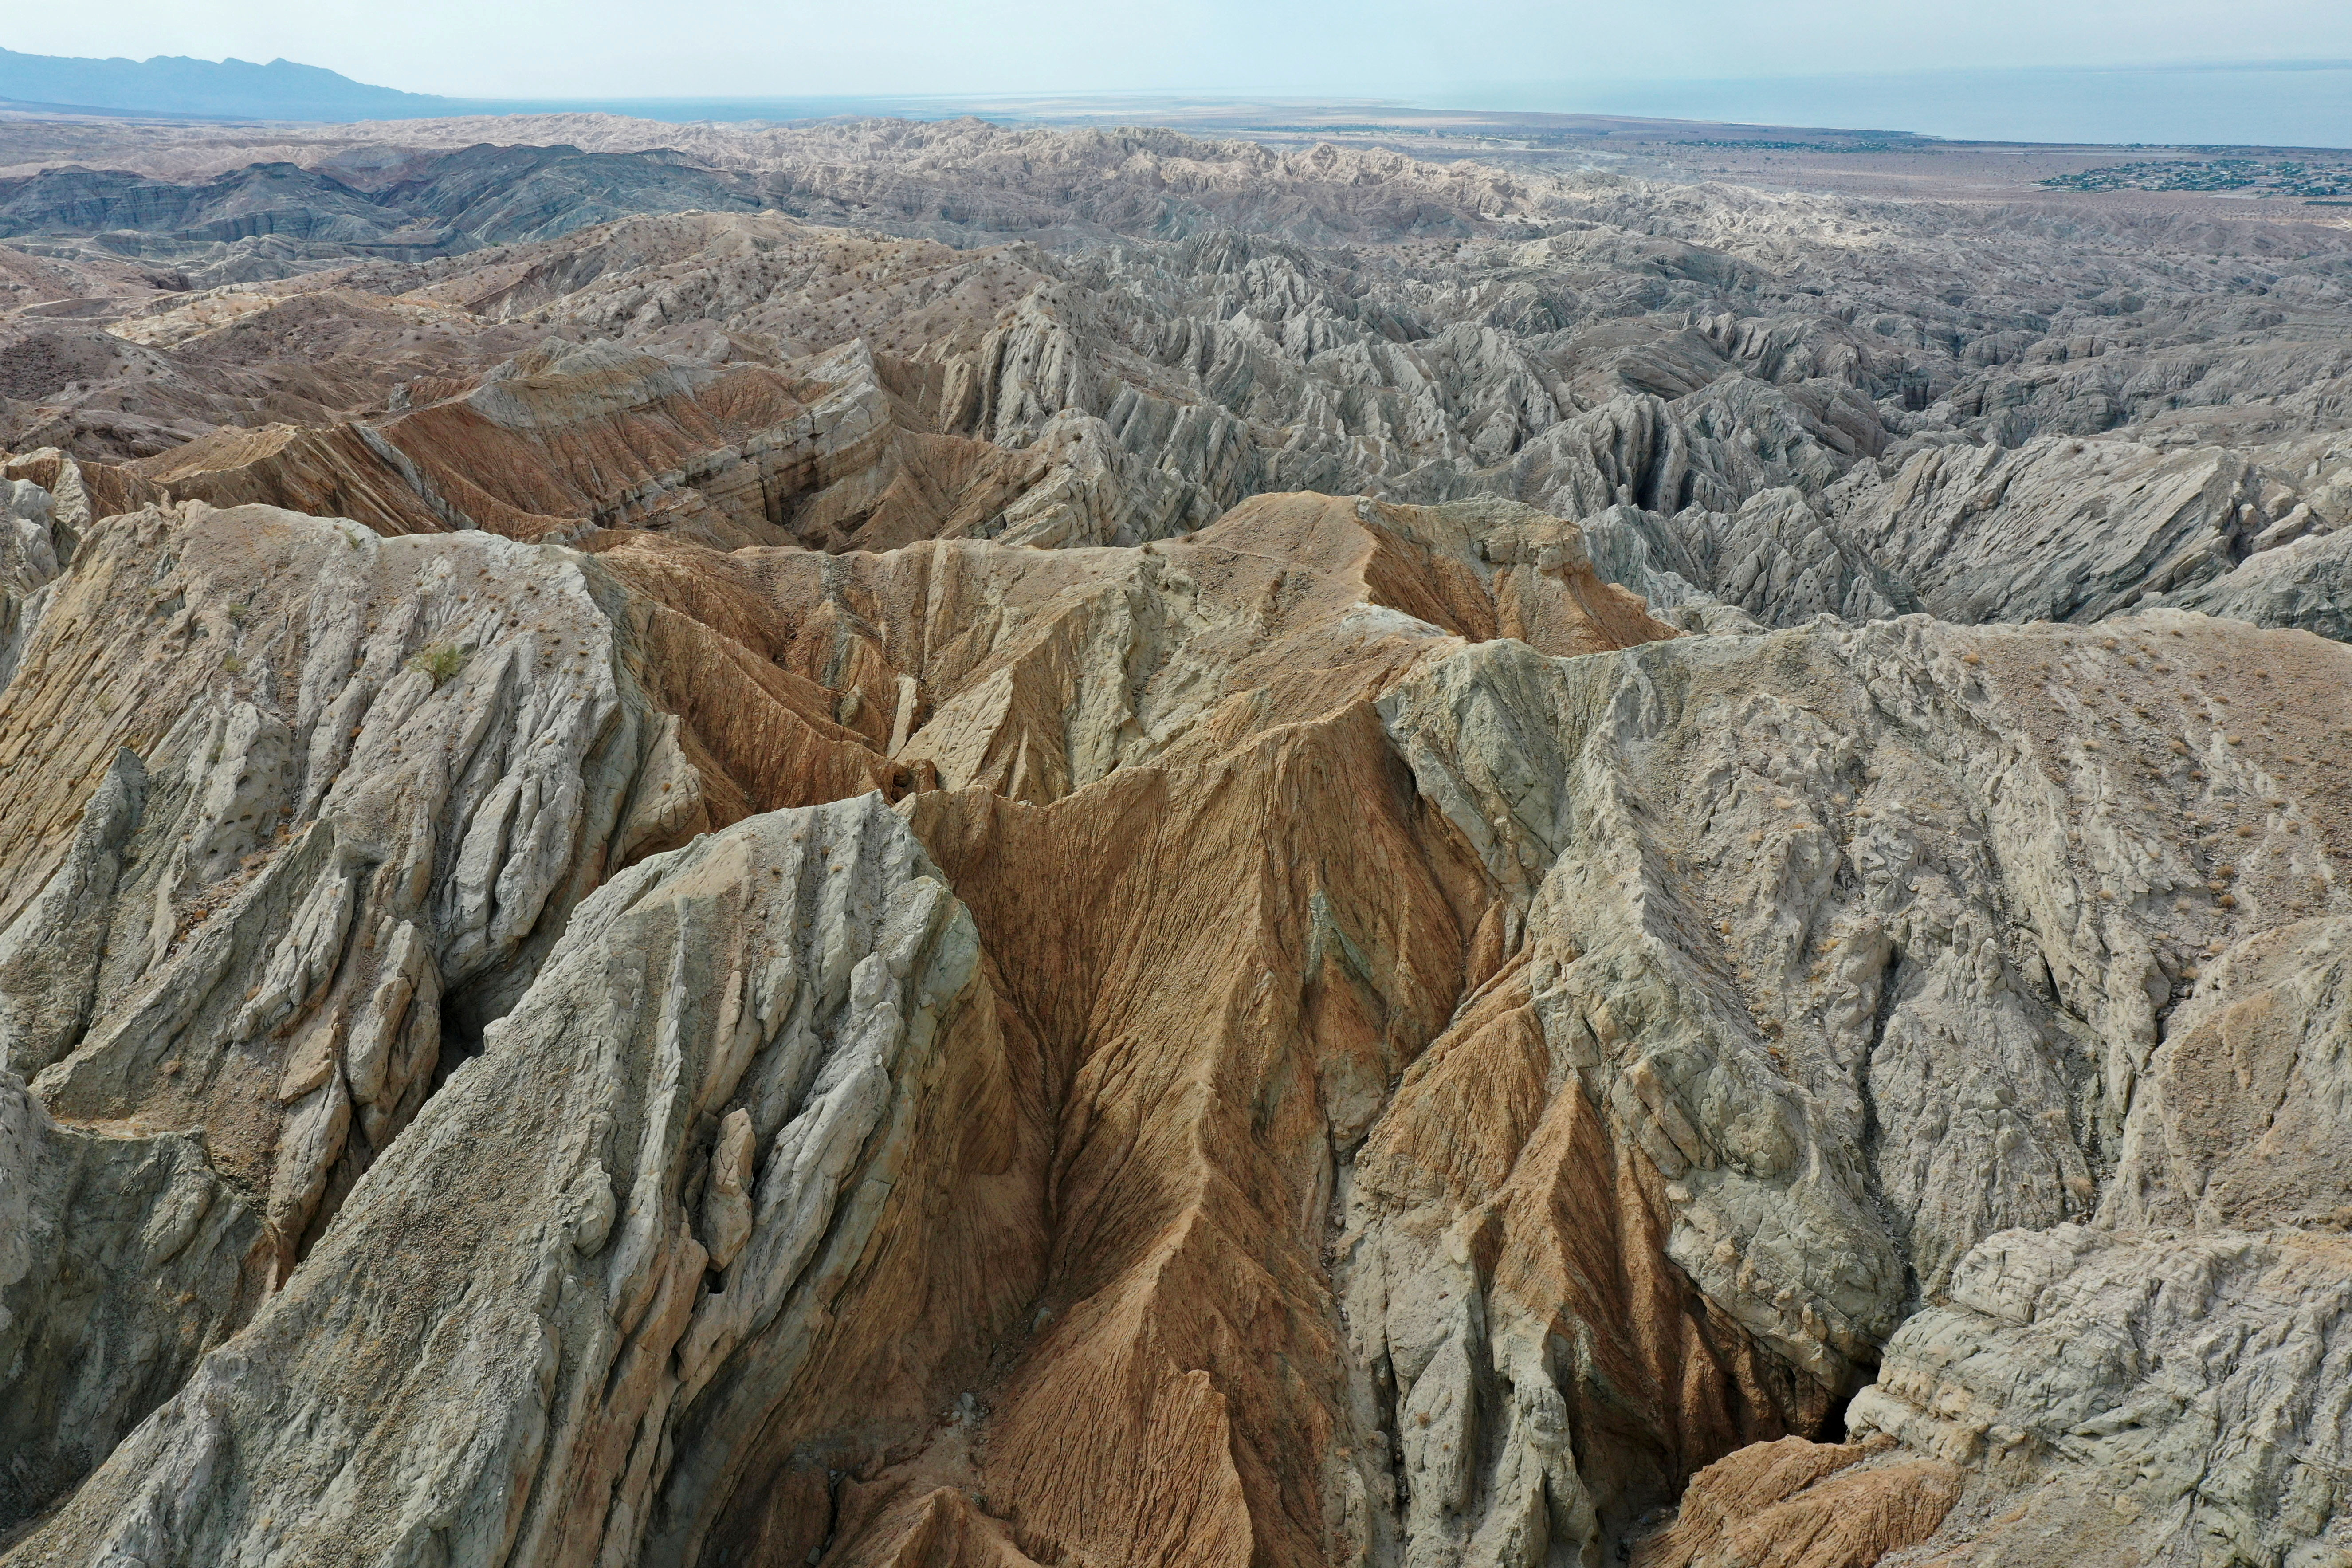 An aerial view shows different rocks and minerals above the San Andreas Faults where the North American Plate and the Pacific Plate collide near the Salton Sea in Mecca, California, U.S., July 4, 2021. REUTERS/Aude Guerrucci